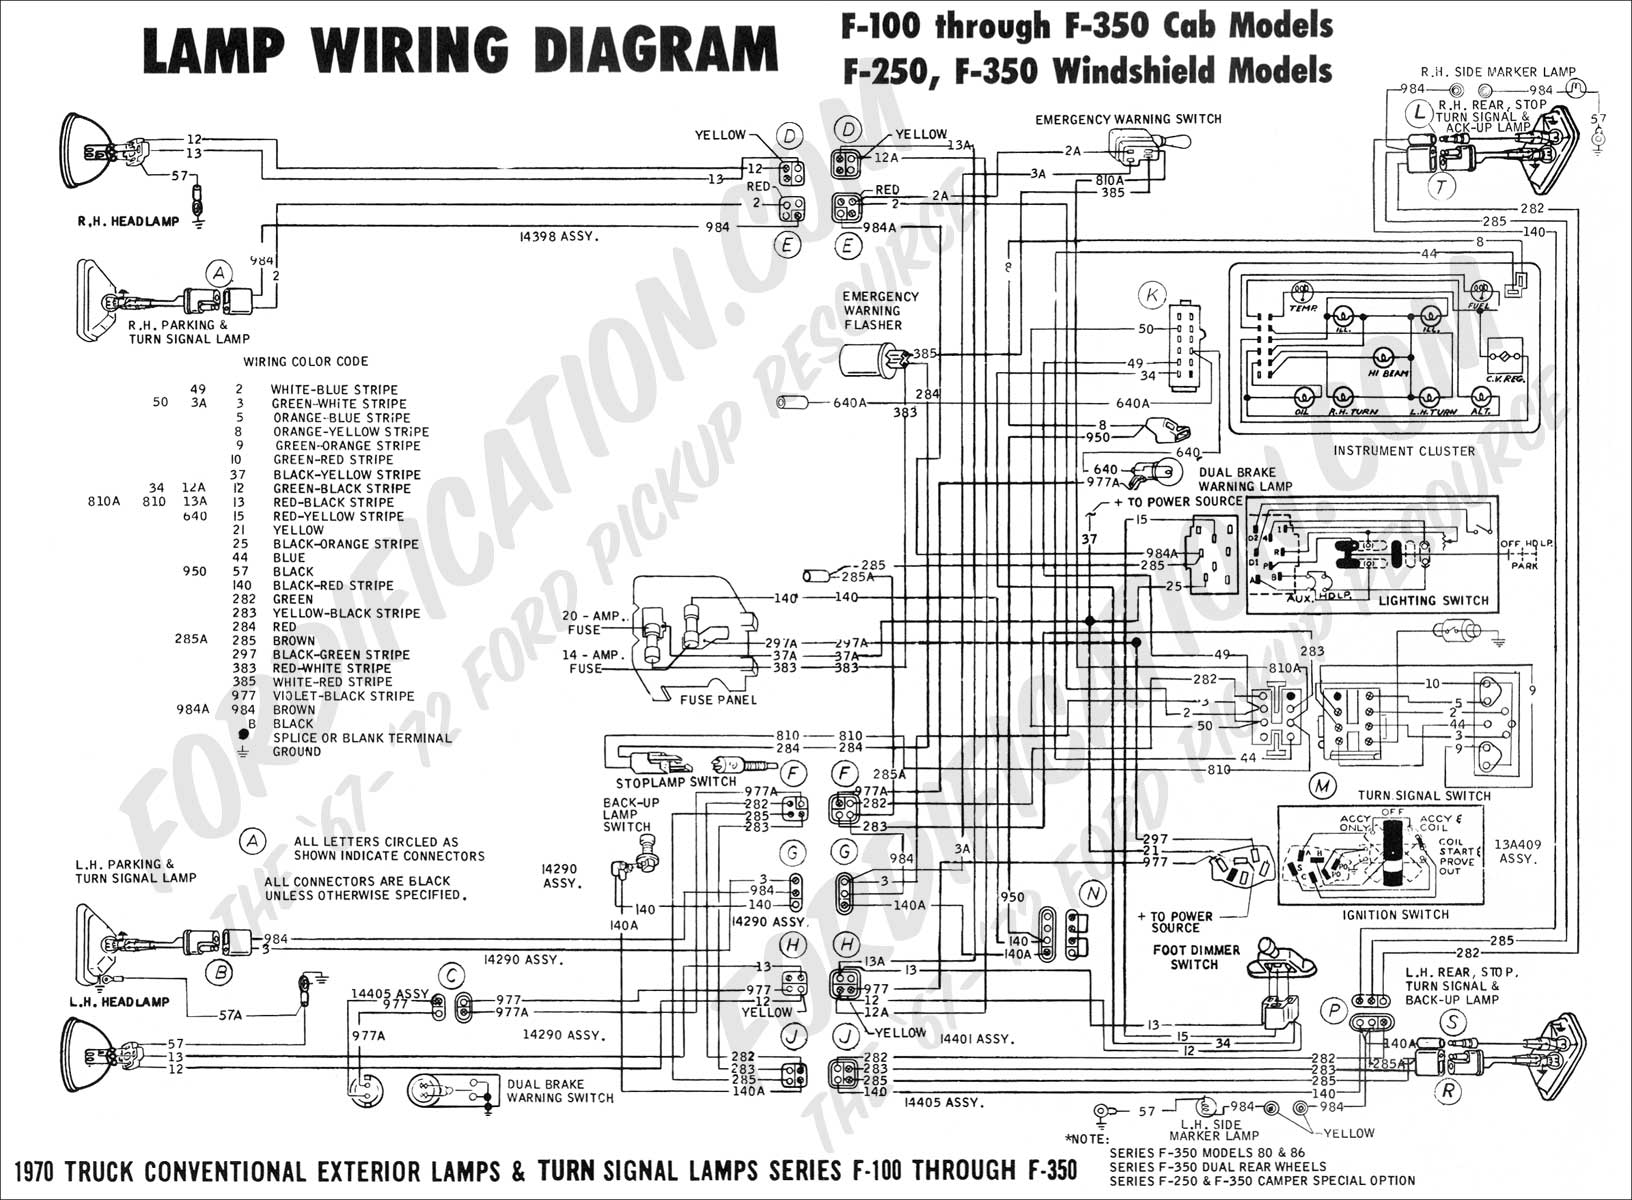 [DIAGRAM_5FD]  1990 Ford L9000 Fuel Systems Diagram | Wiring Diagram | 1984 Ford L9000 Truck Wiring Diagrams |  | Wiring Diagram - AutoScout24